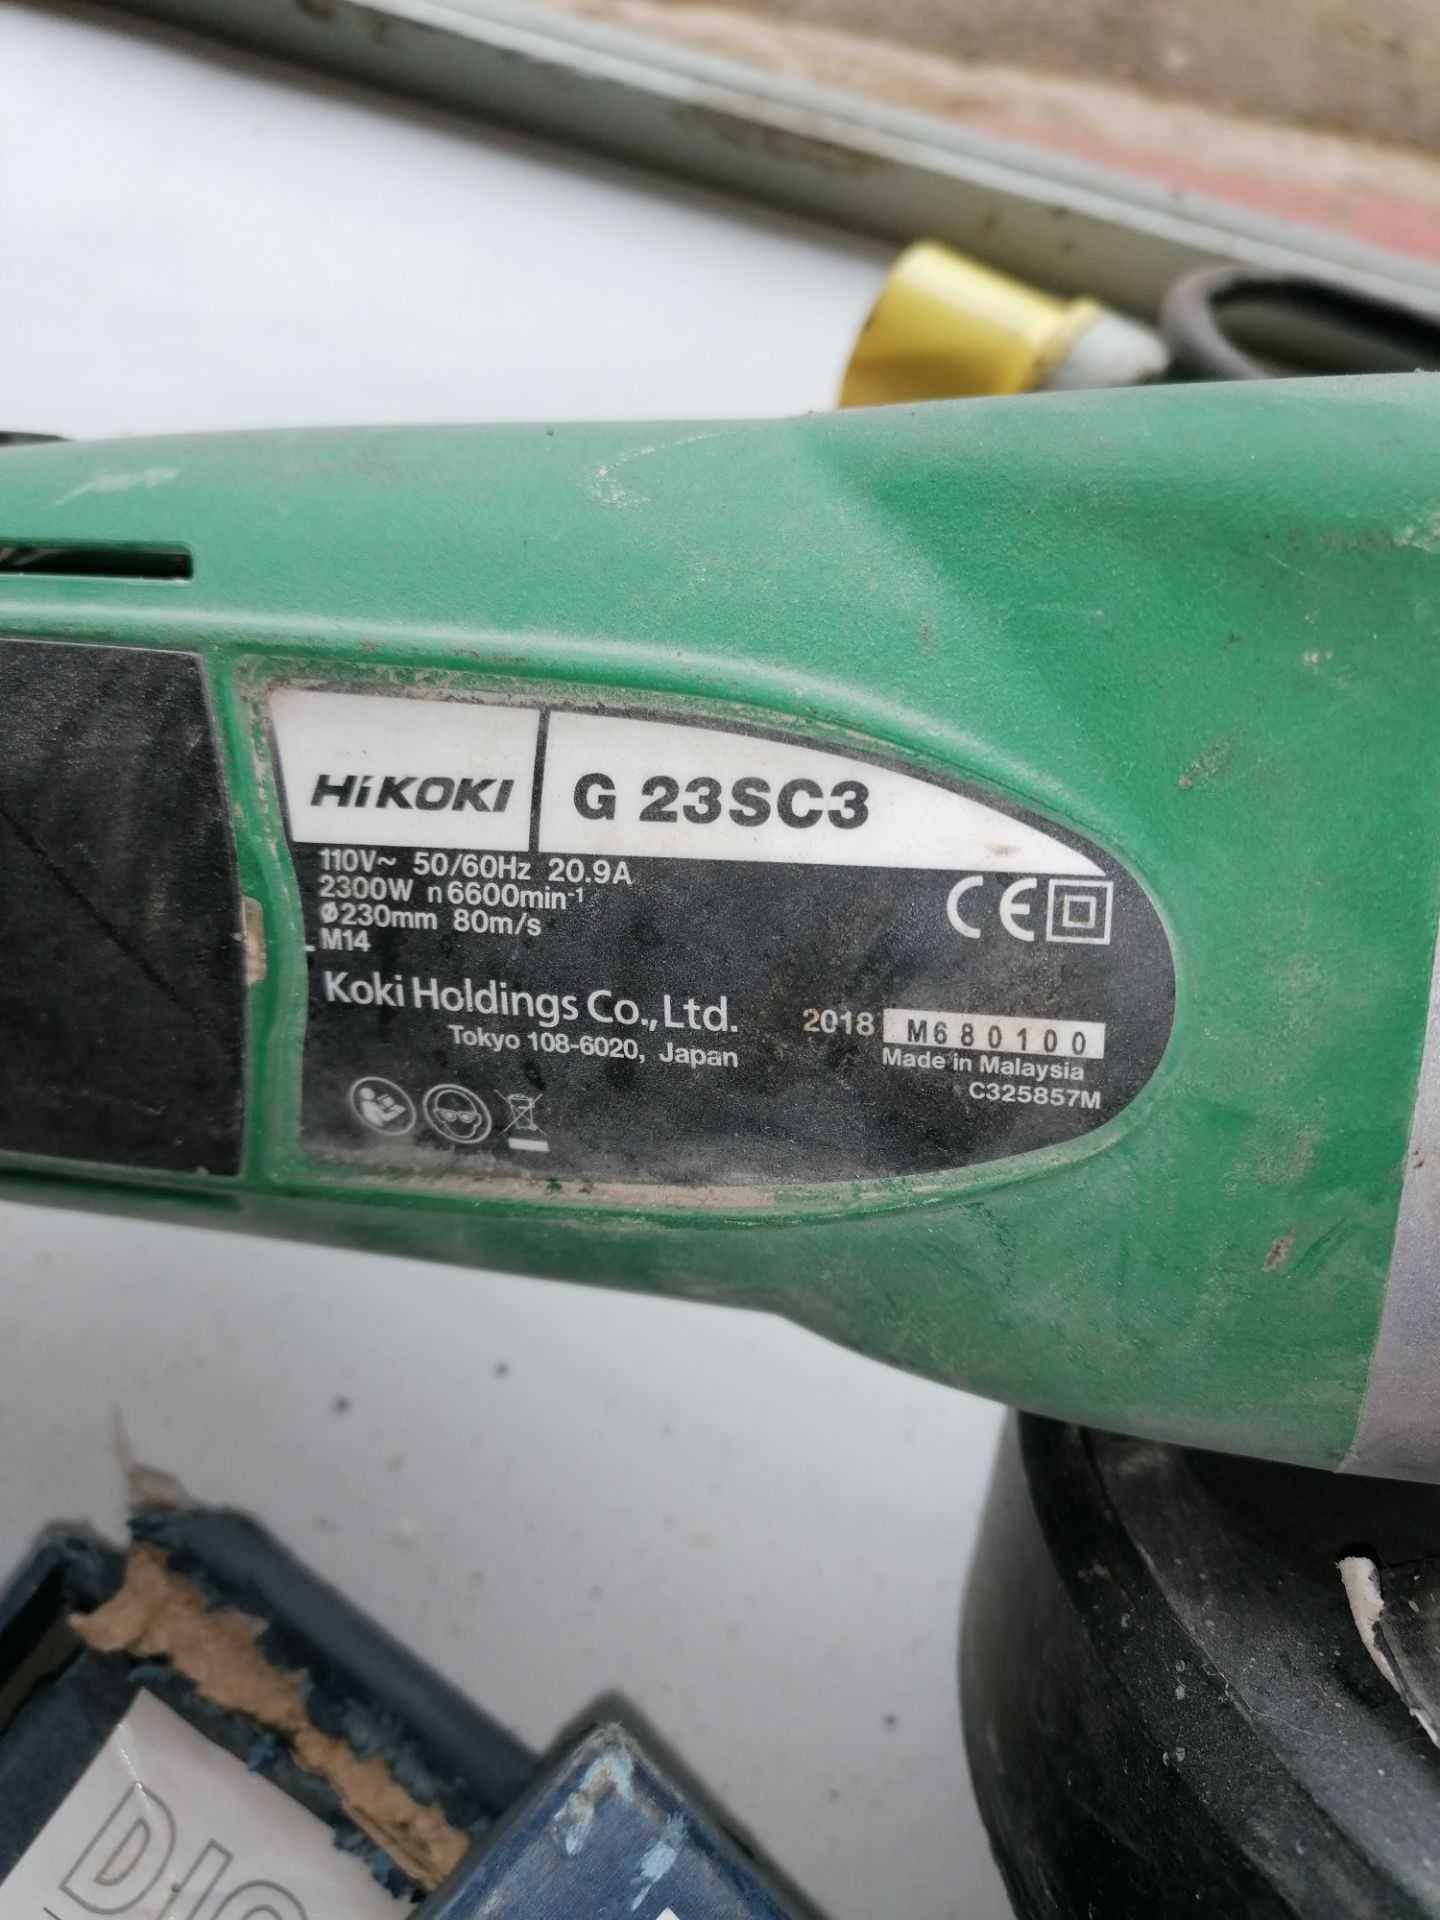 Hikoki G23SCB Grinder with Blades & Extractor Attachment (to attach to Lot 27) - Image 9 of 9